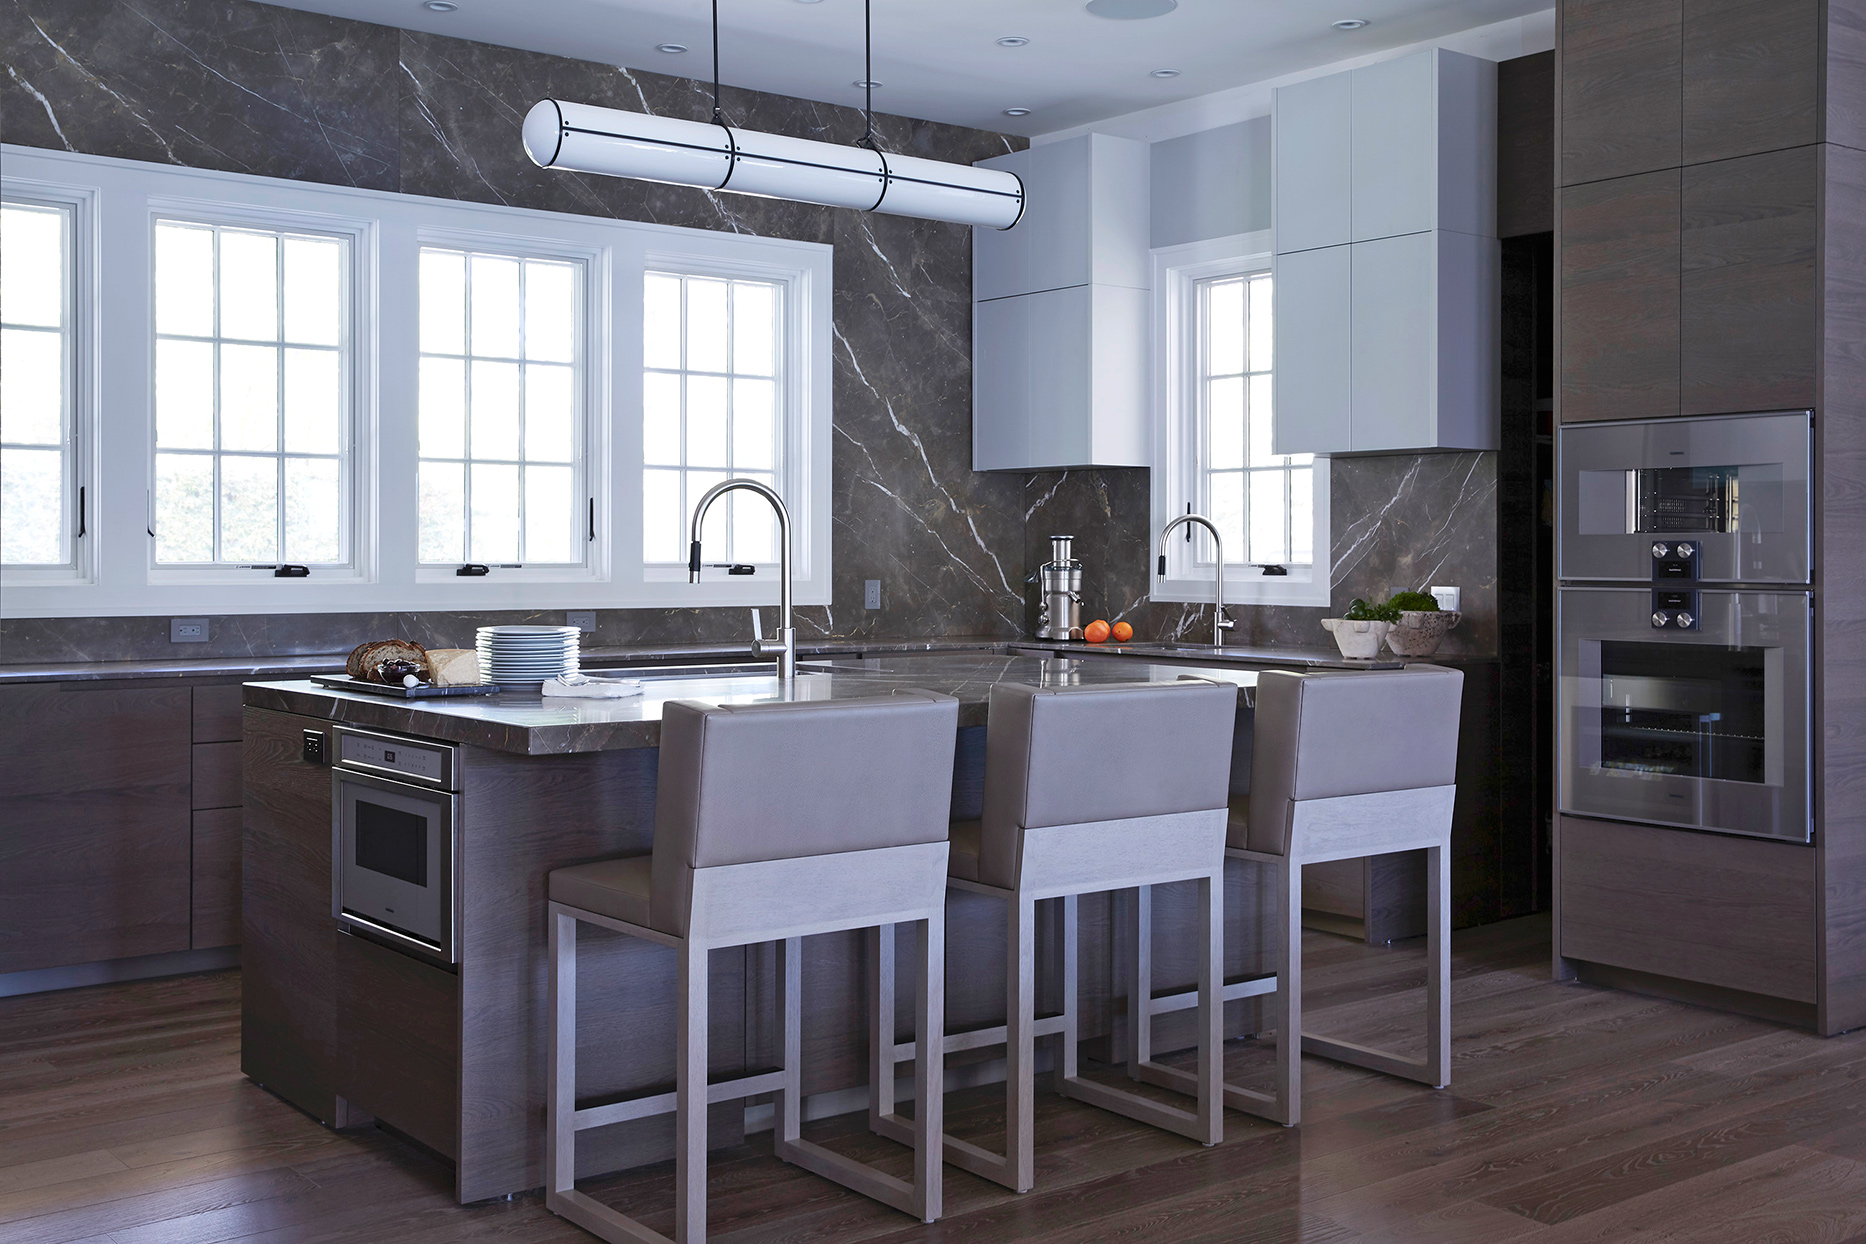 gray marble backsplash in kitchen